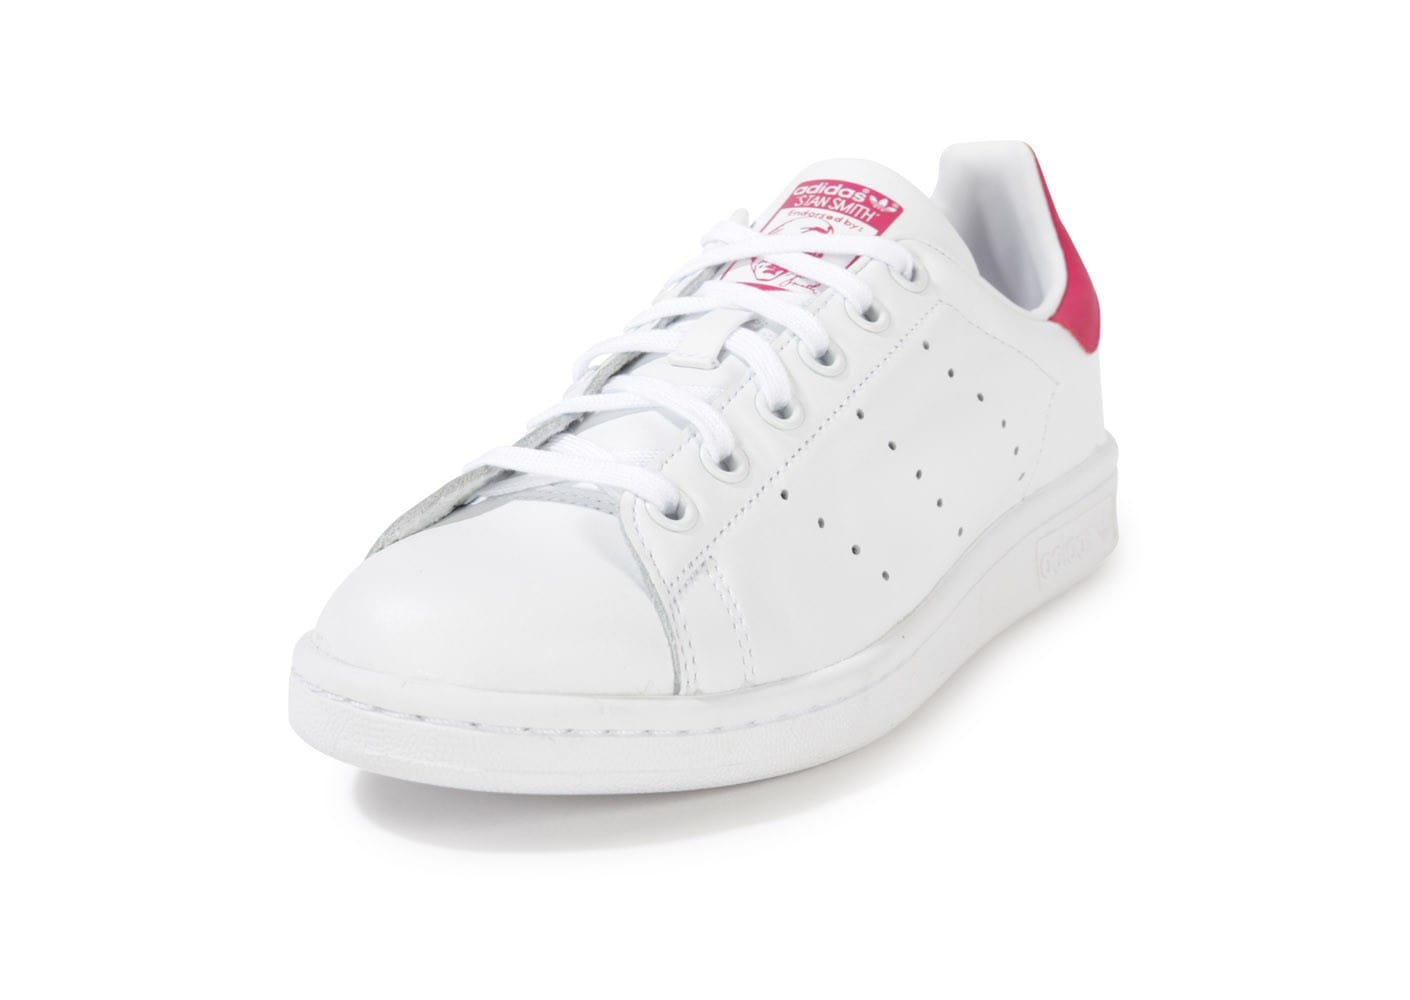 adidas stan smith blanche et rose